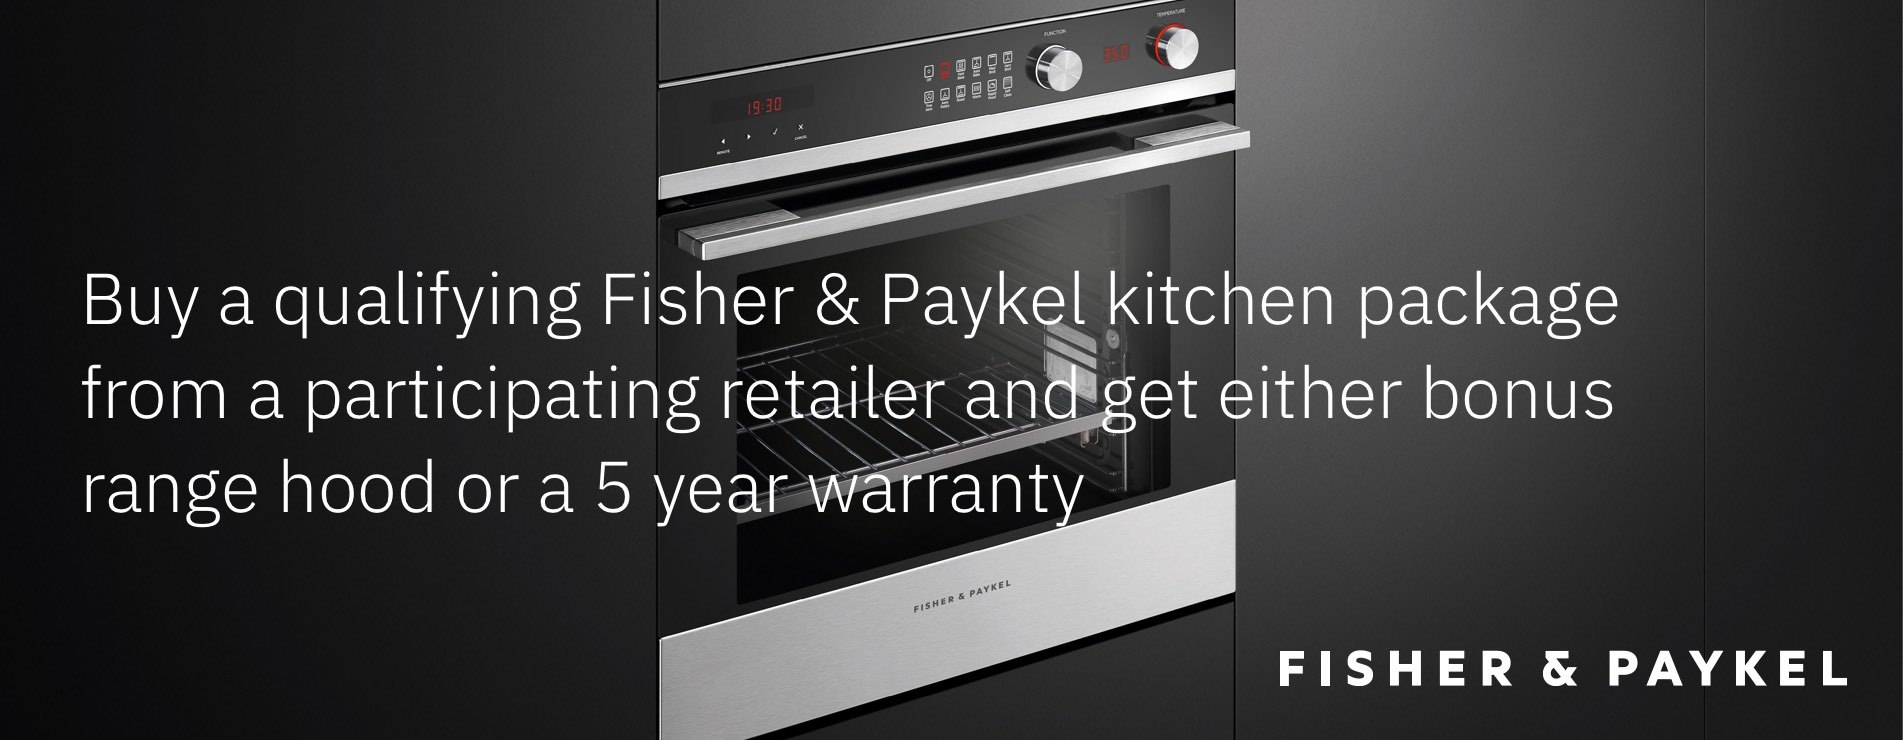 Fisher & Paykel Promo